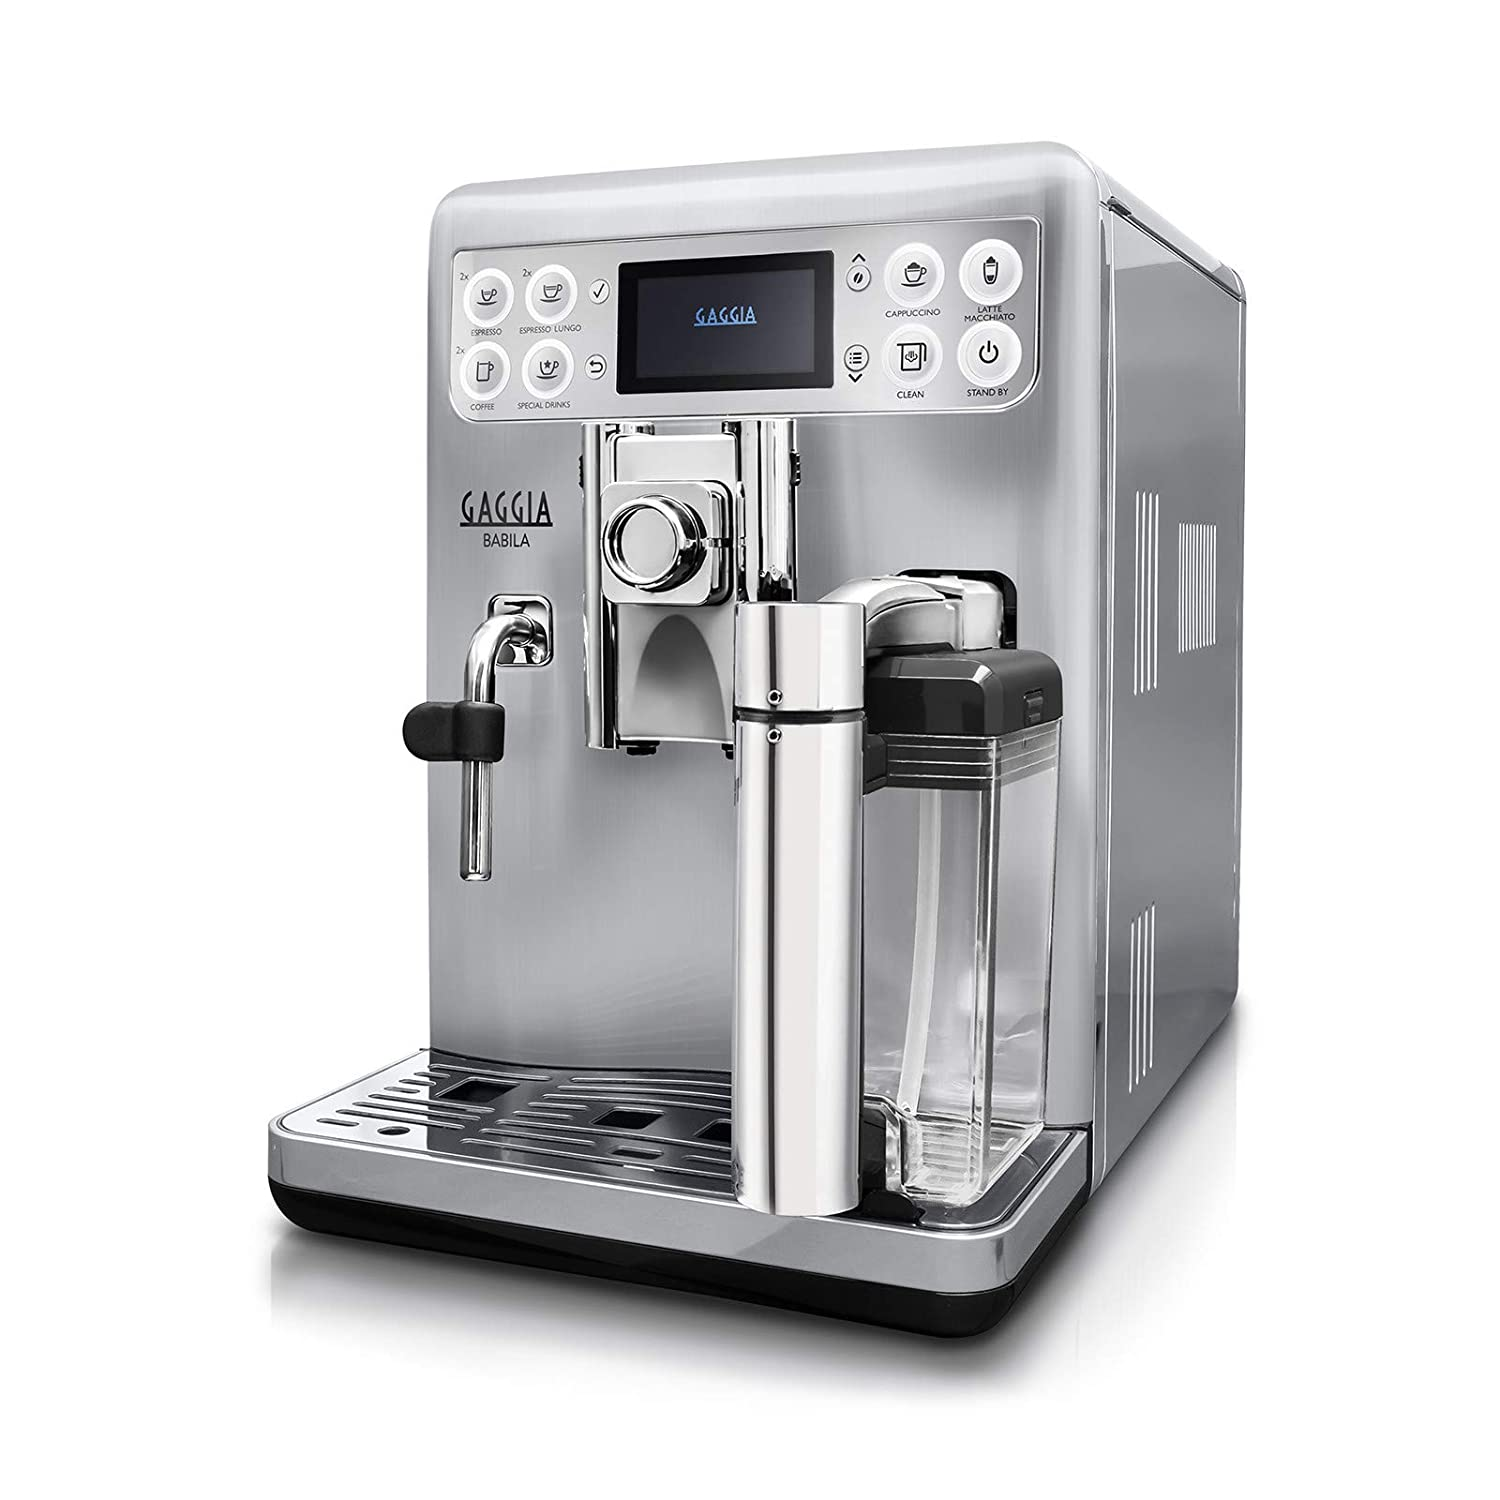 /Coffee Gaggia ri9700//60/Freestanding Fully Automatic Espresso Machine 1.5L Silver Freestanding, Espresso Machine, Silver, Stainless Steel, Cup, Stainless Steel, Touch Stainless Steel/